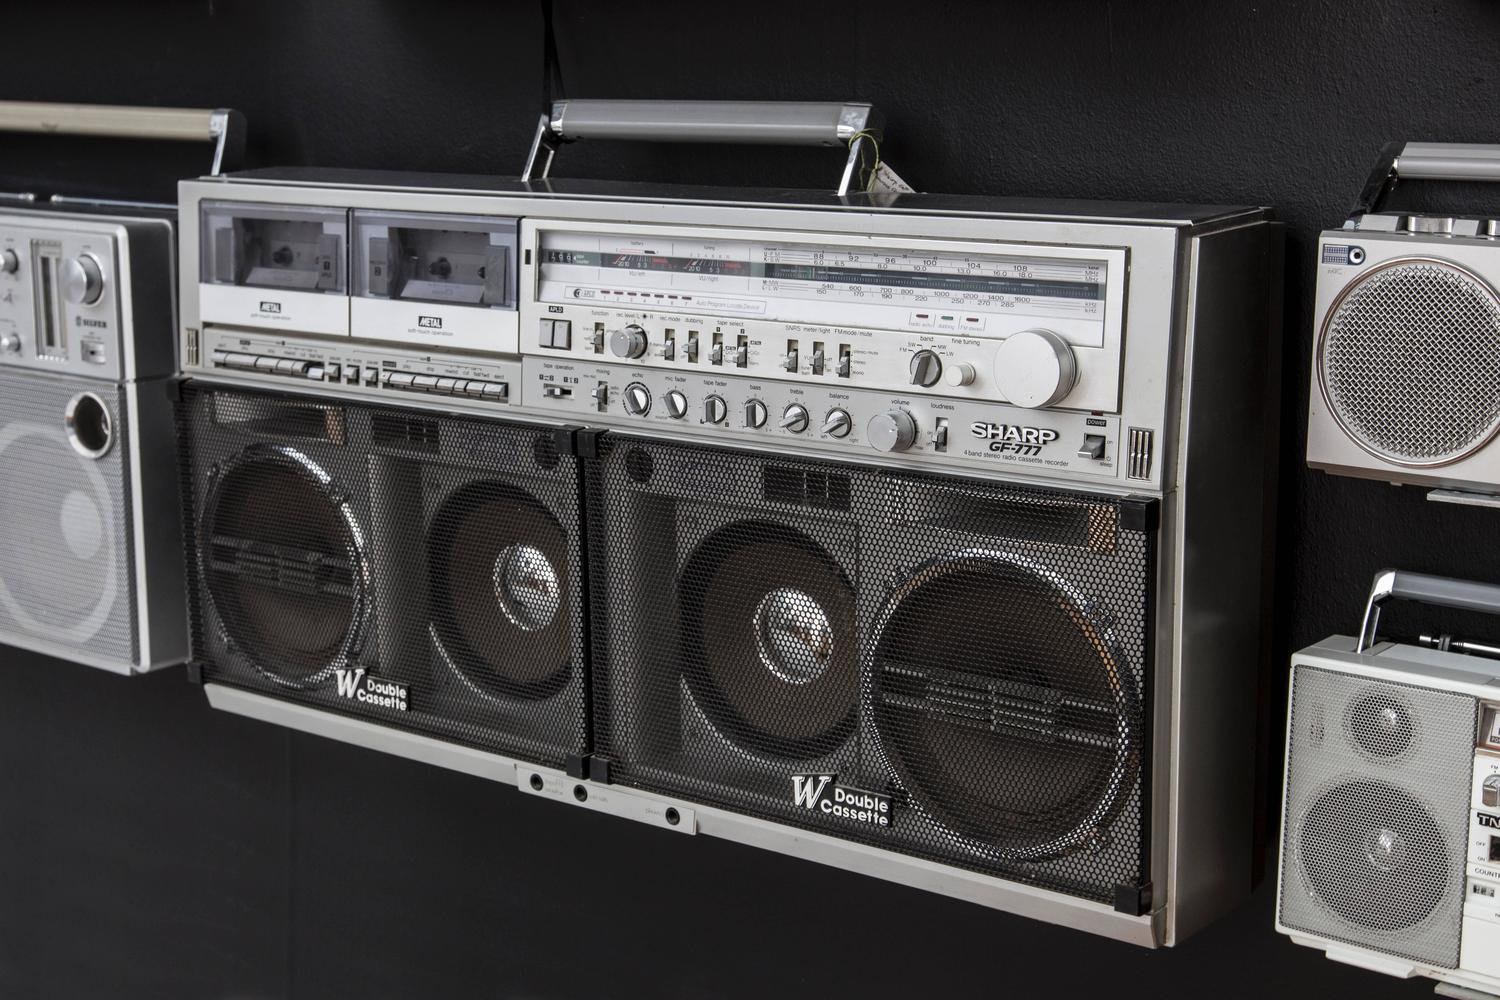 Unique Vintage Boombox Collection From The 1980s For Sale